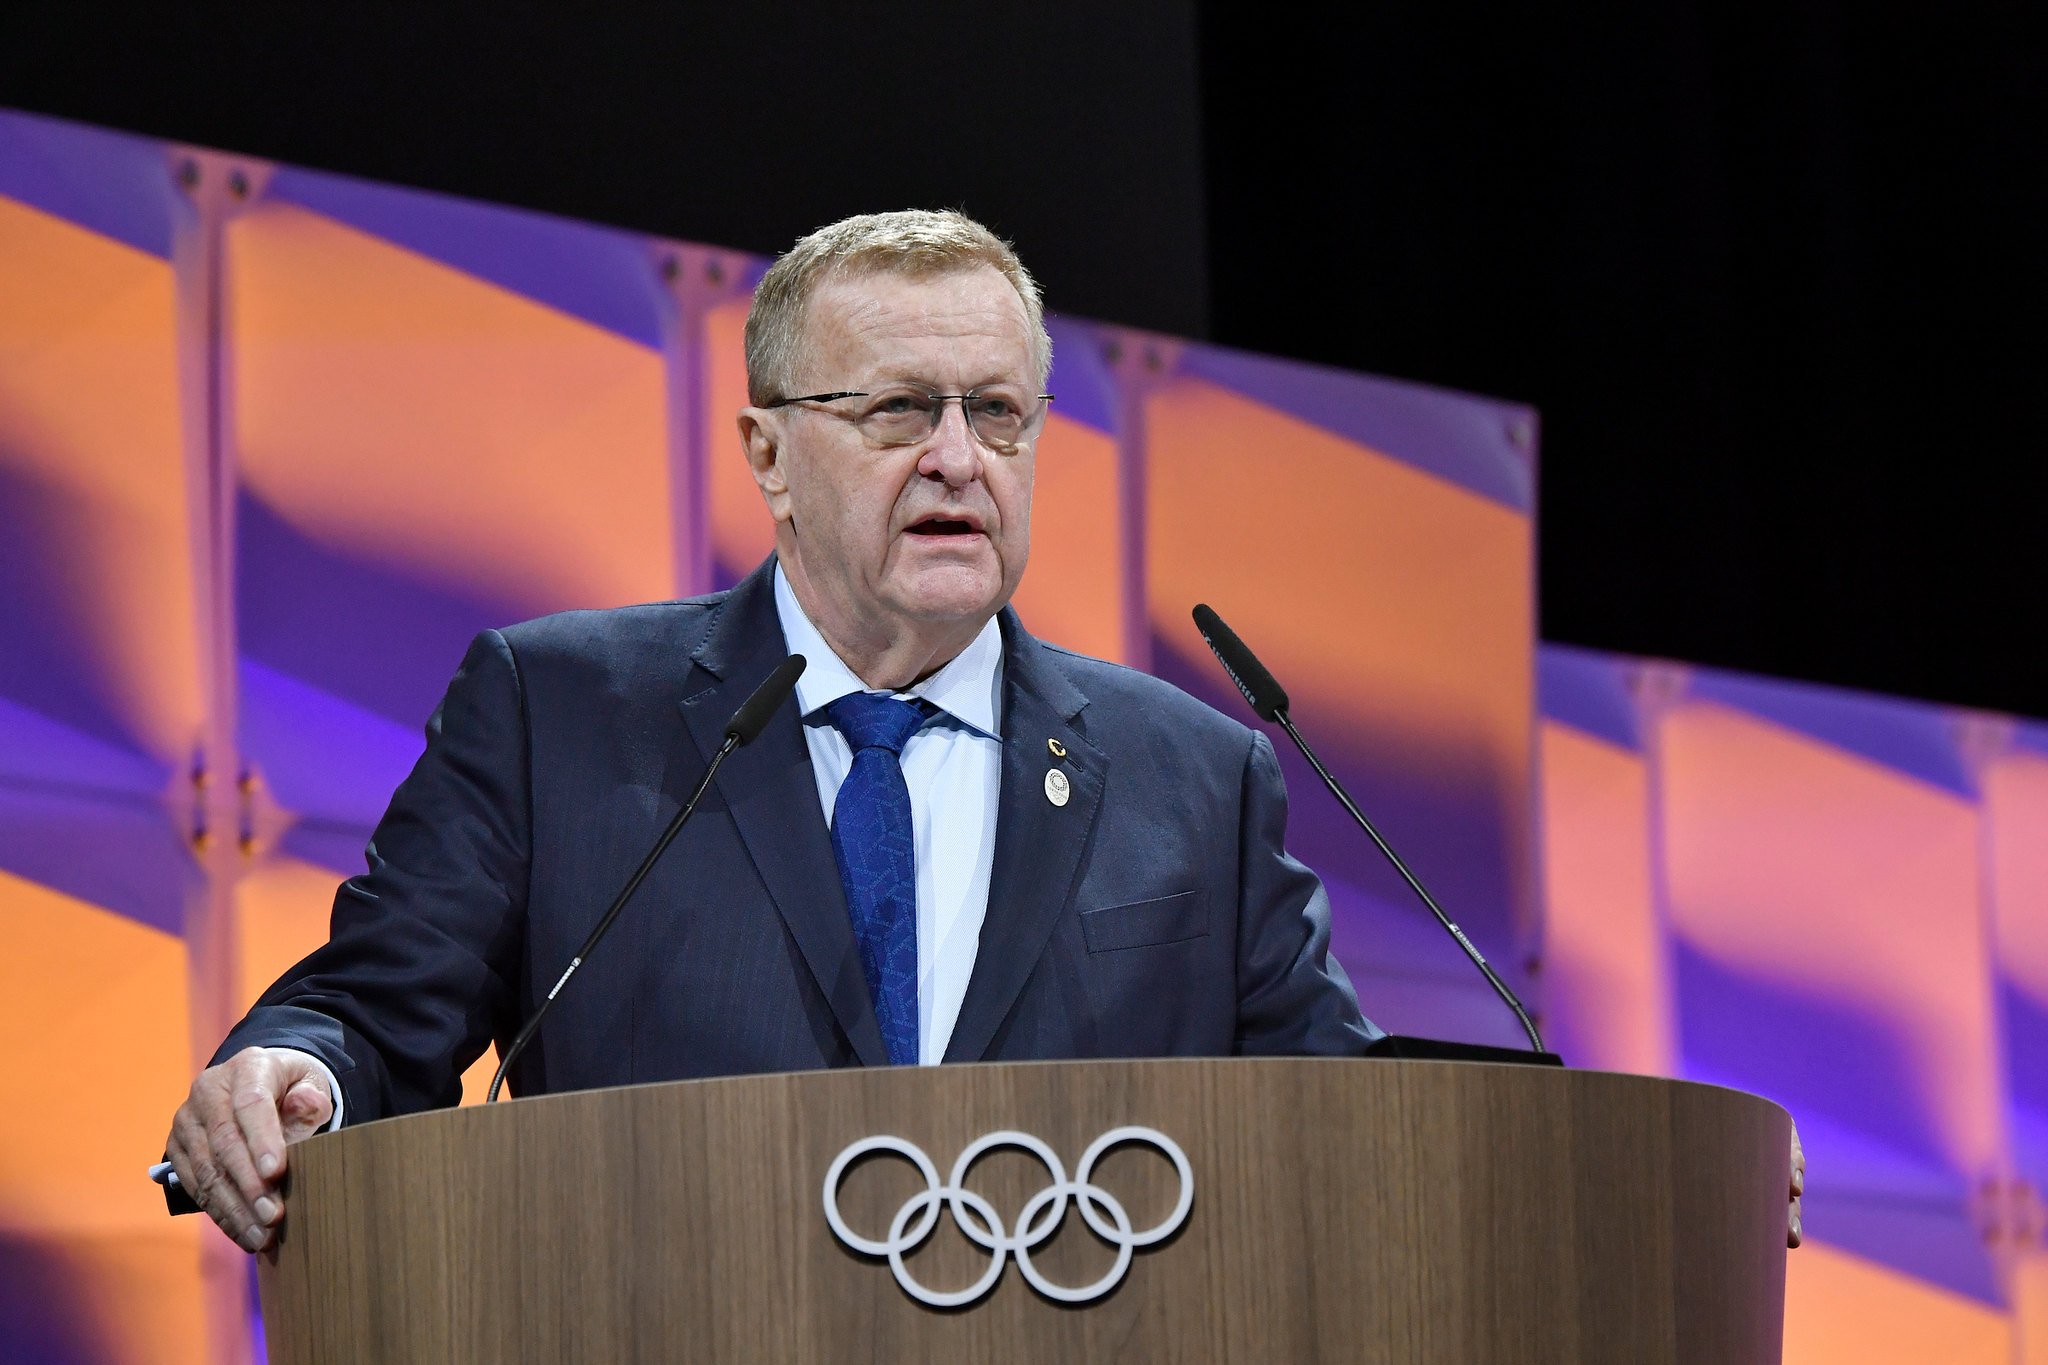 AOC President John Coates has been elected Vice-President of the International Olympic Committee